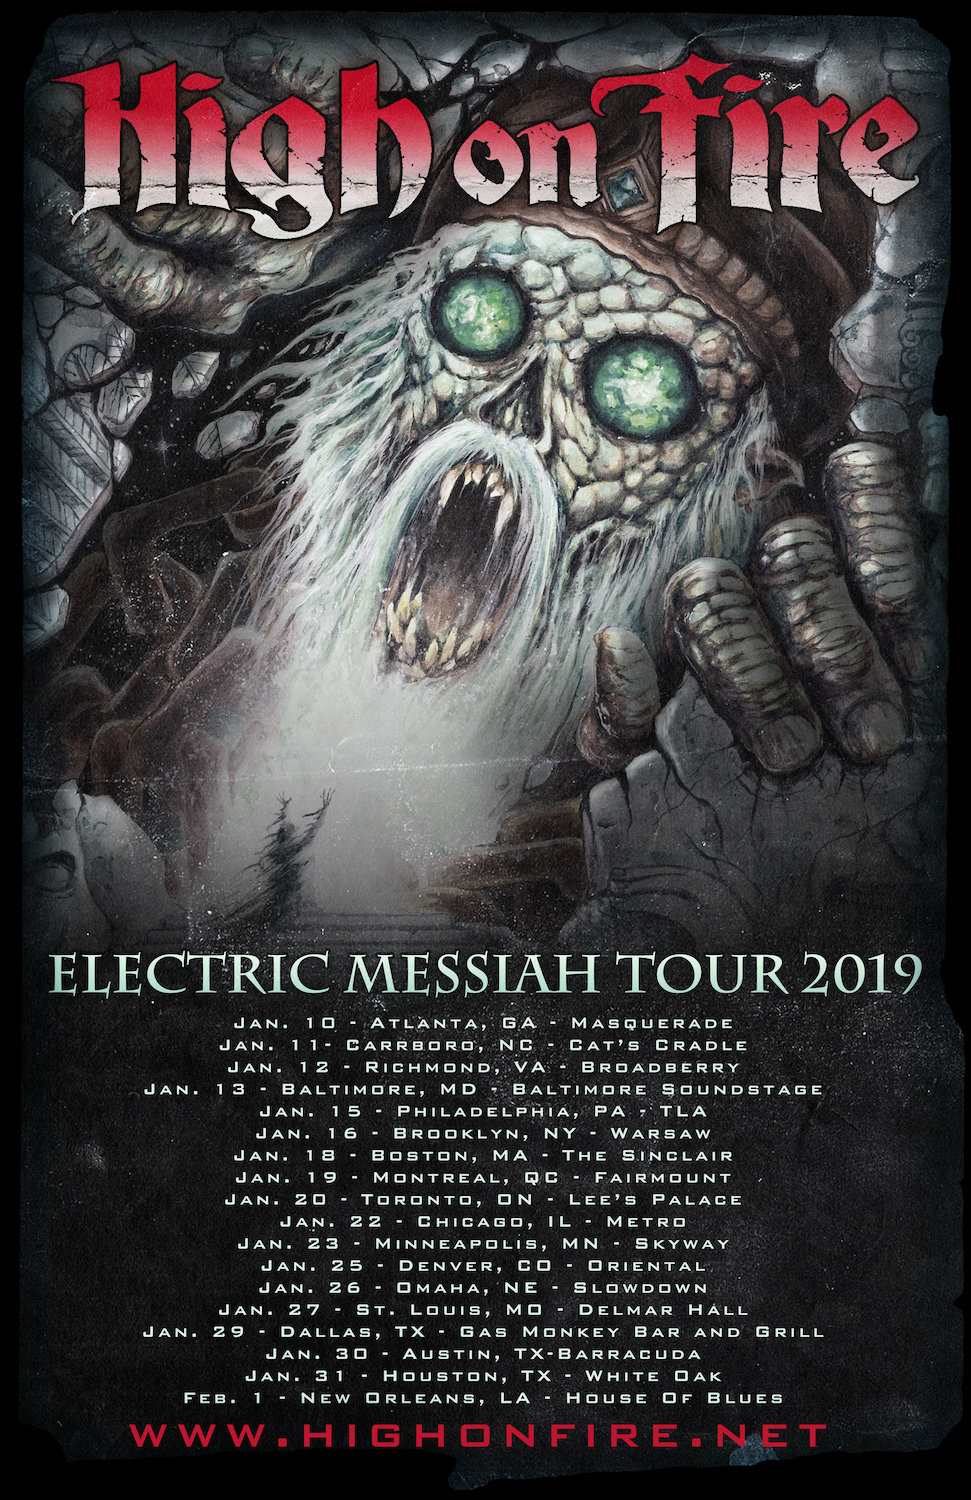 high on fire 2019 tour